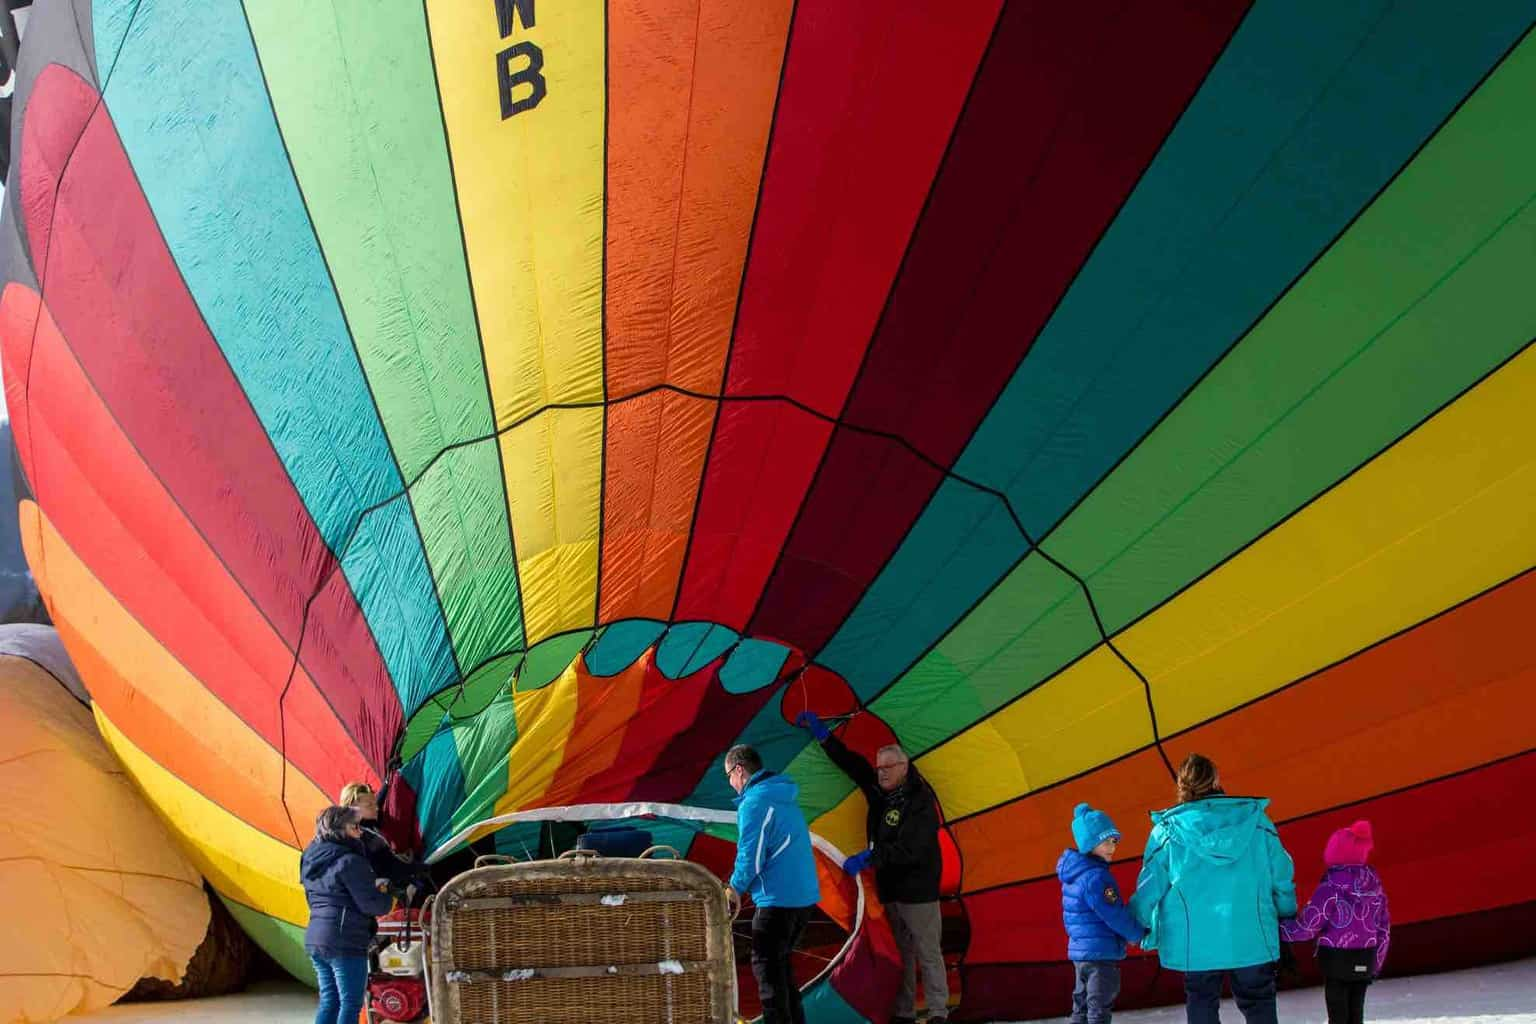 The Fabulous Hot Air Balloons at Chateau-d'Oex